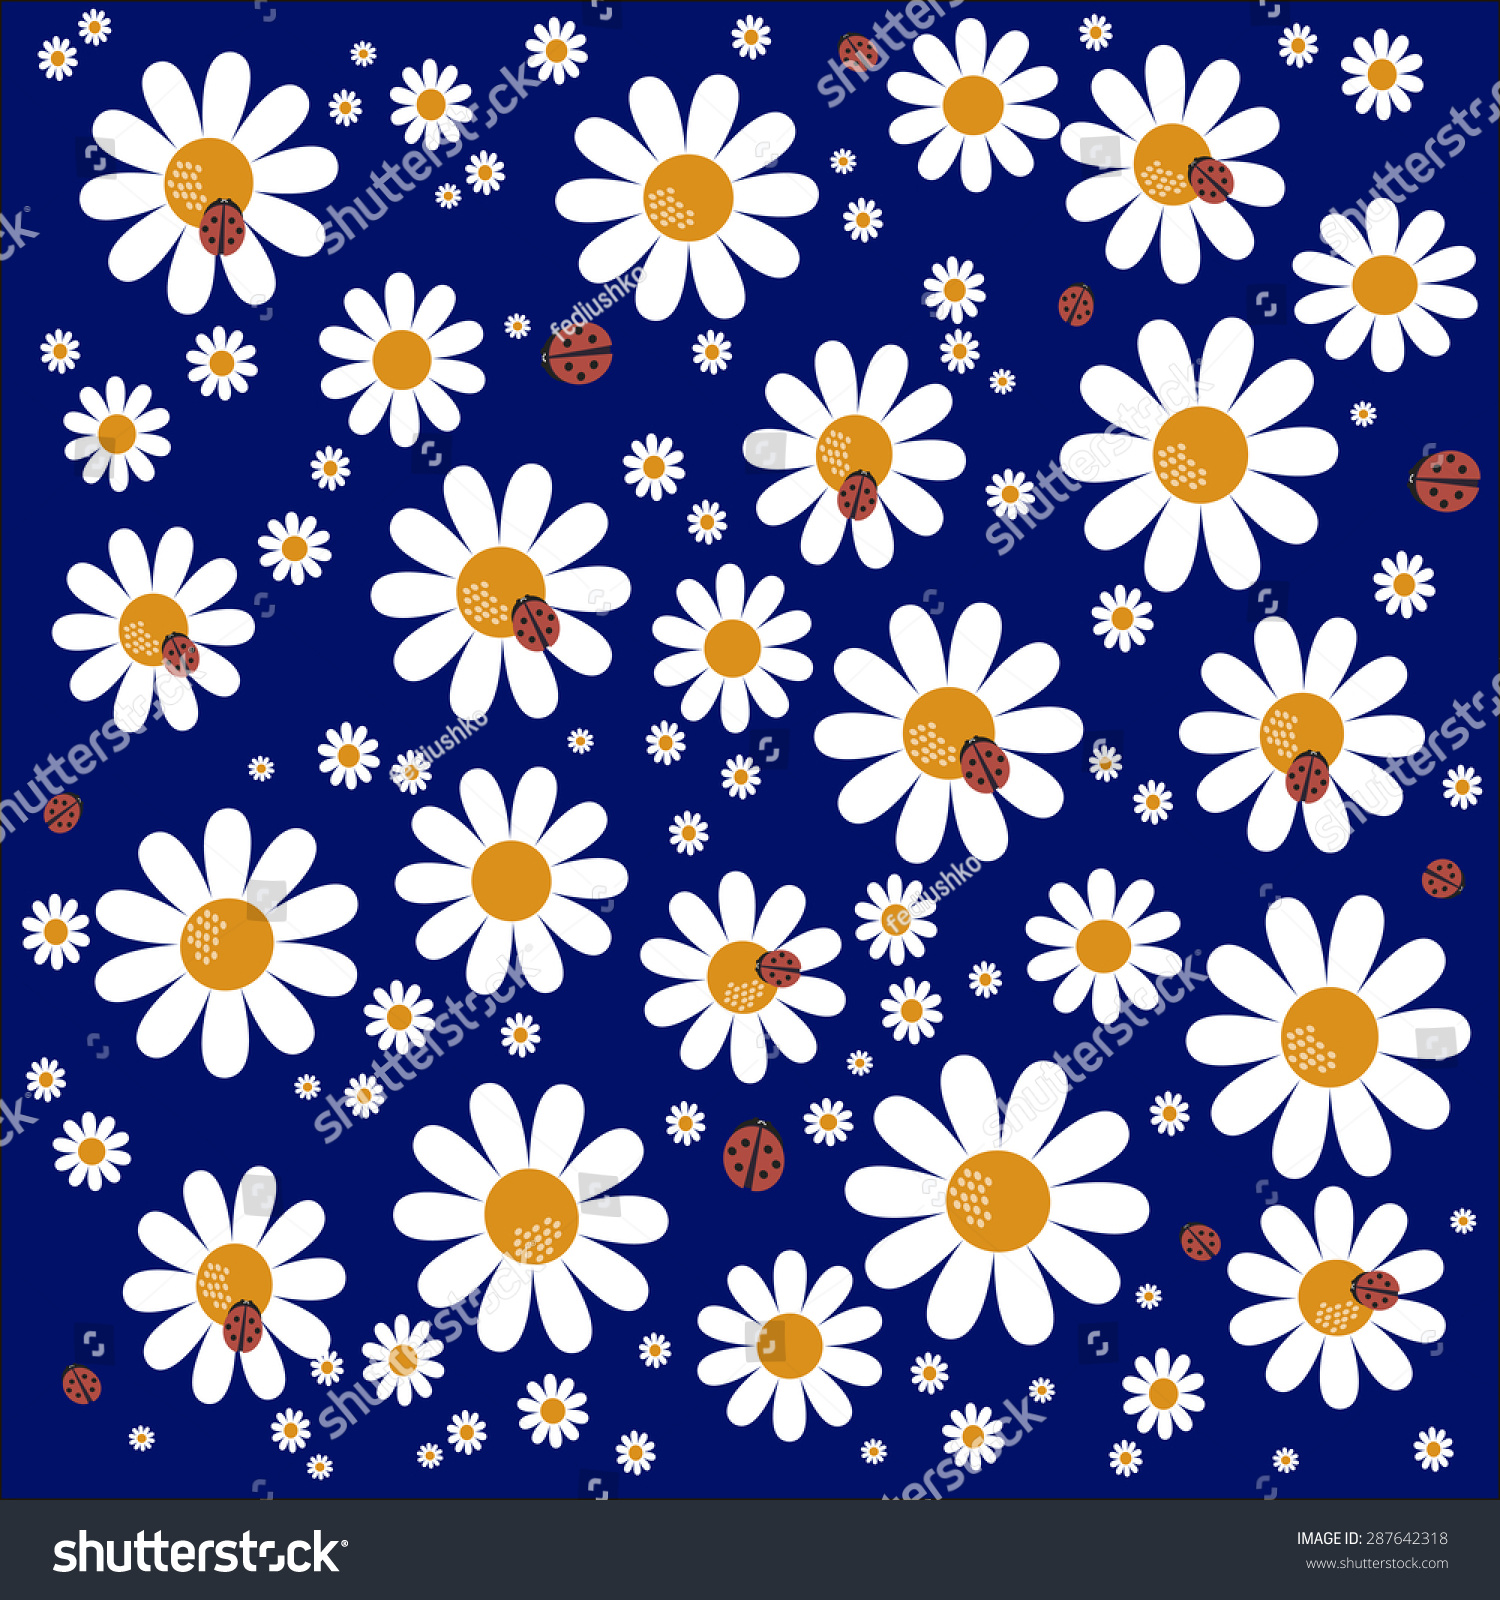 Illustration Daisy Flower Background Stock Illustration 287642318